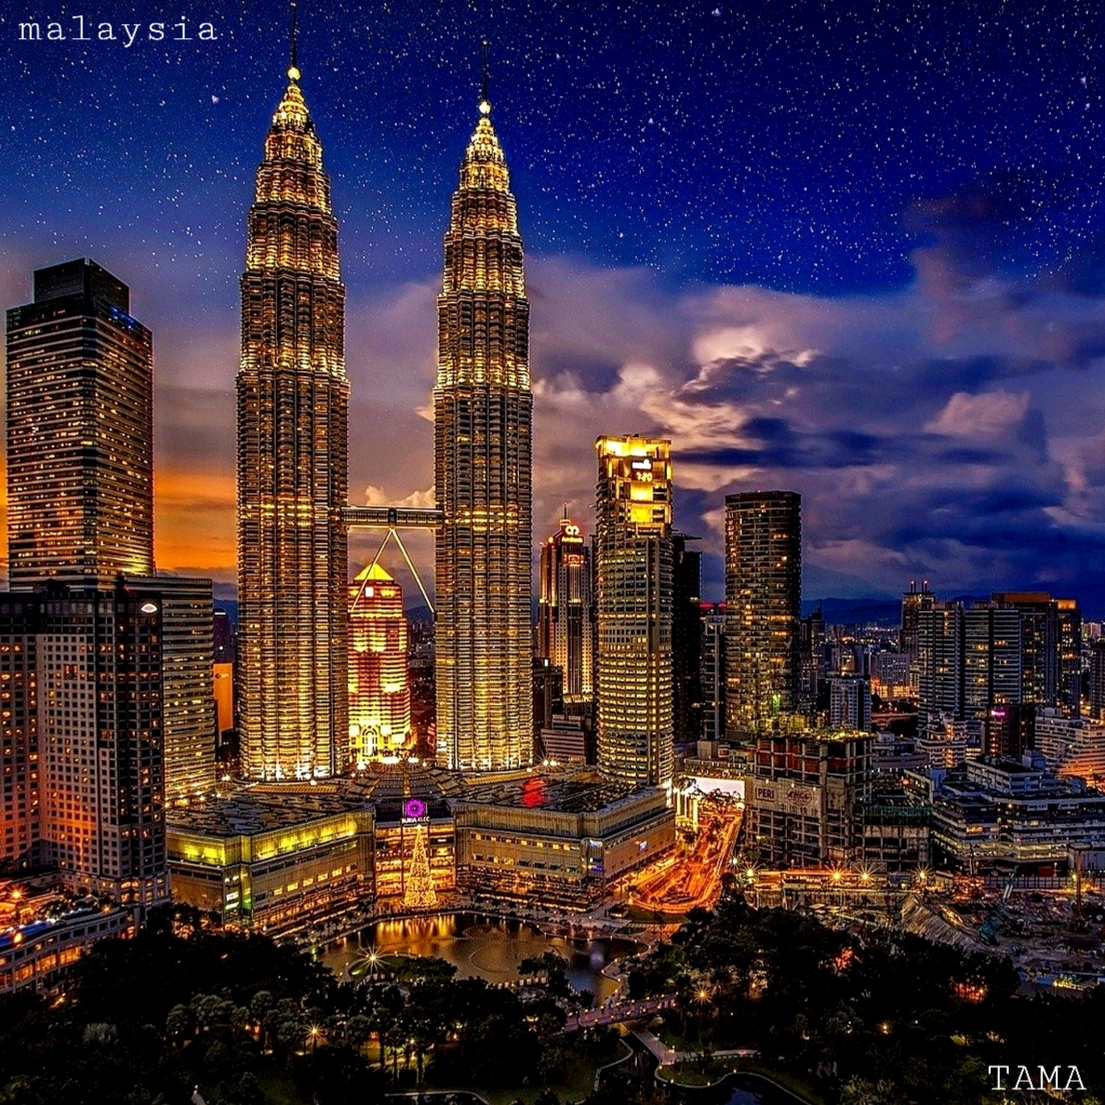 Independence Day in Malaysia